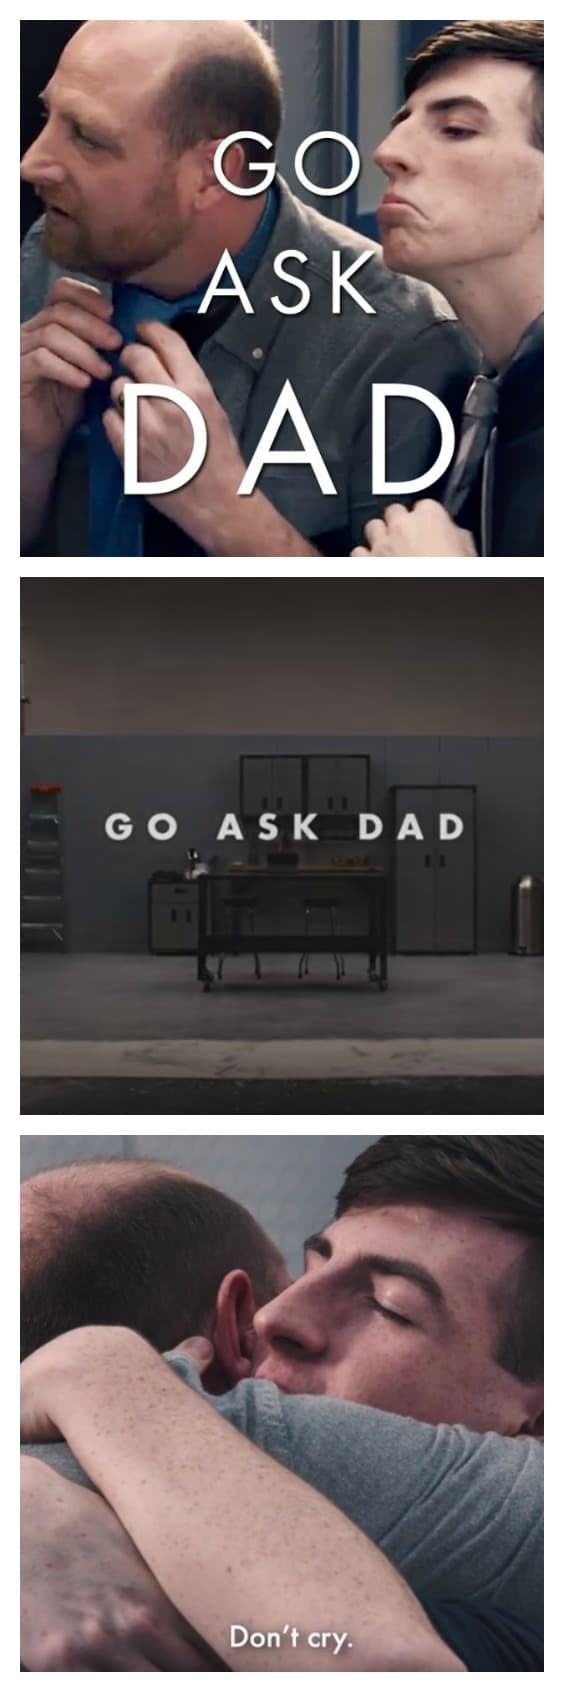 "Tying a tie, throwing a football, asking a girl for a date... mastering the morning shave typically are moments shared between fathers and sons. But in our world where screen-time replaces face-time, teens are increasingly replacing dad with YouTube ""how-tos."" Watch what happens when they ""Ask Dad."" 31Daily.com"